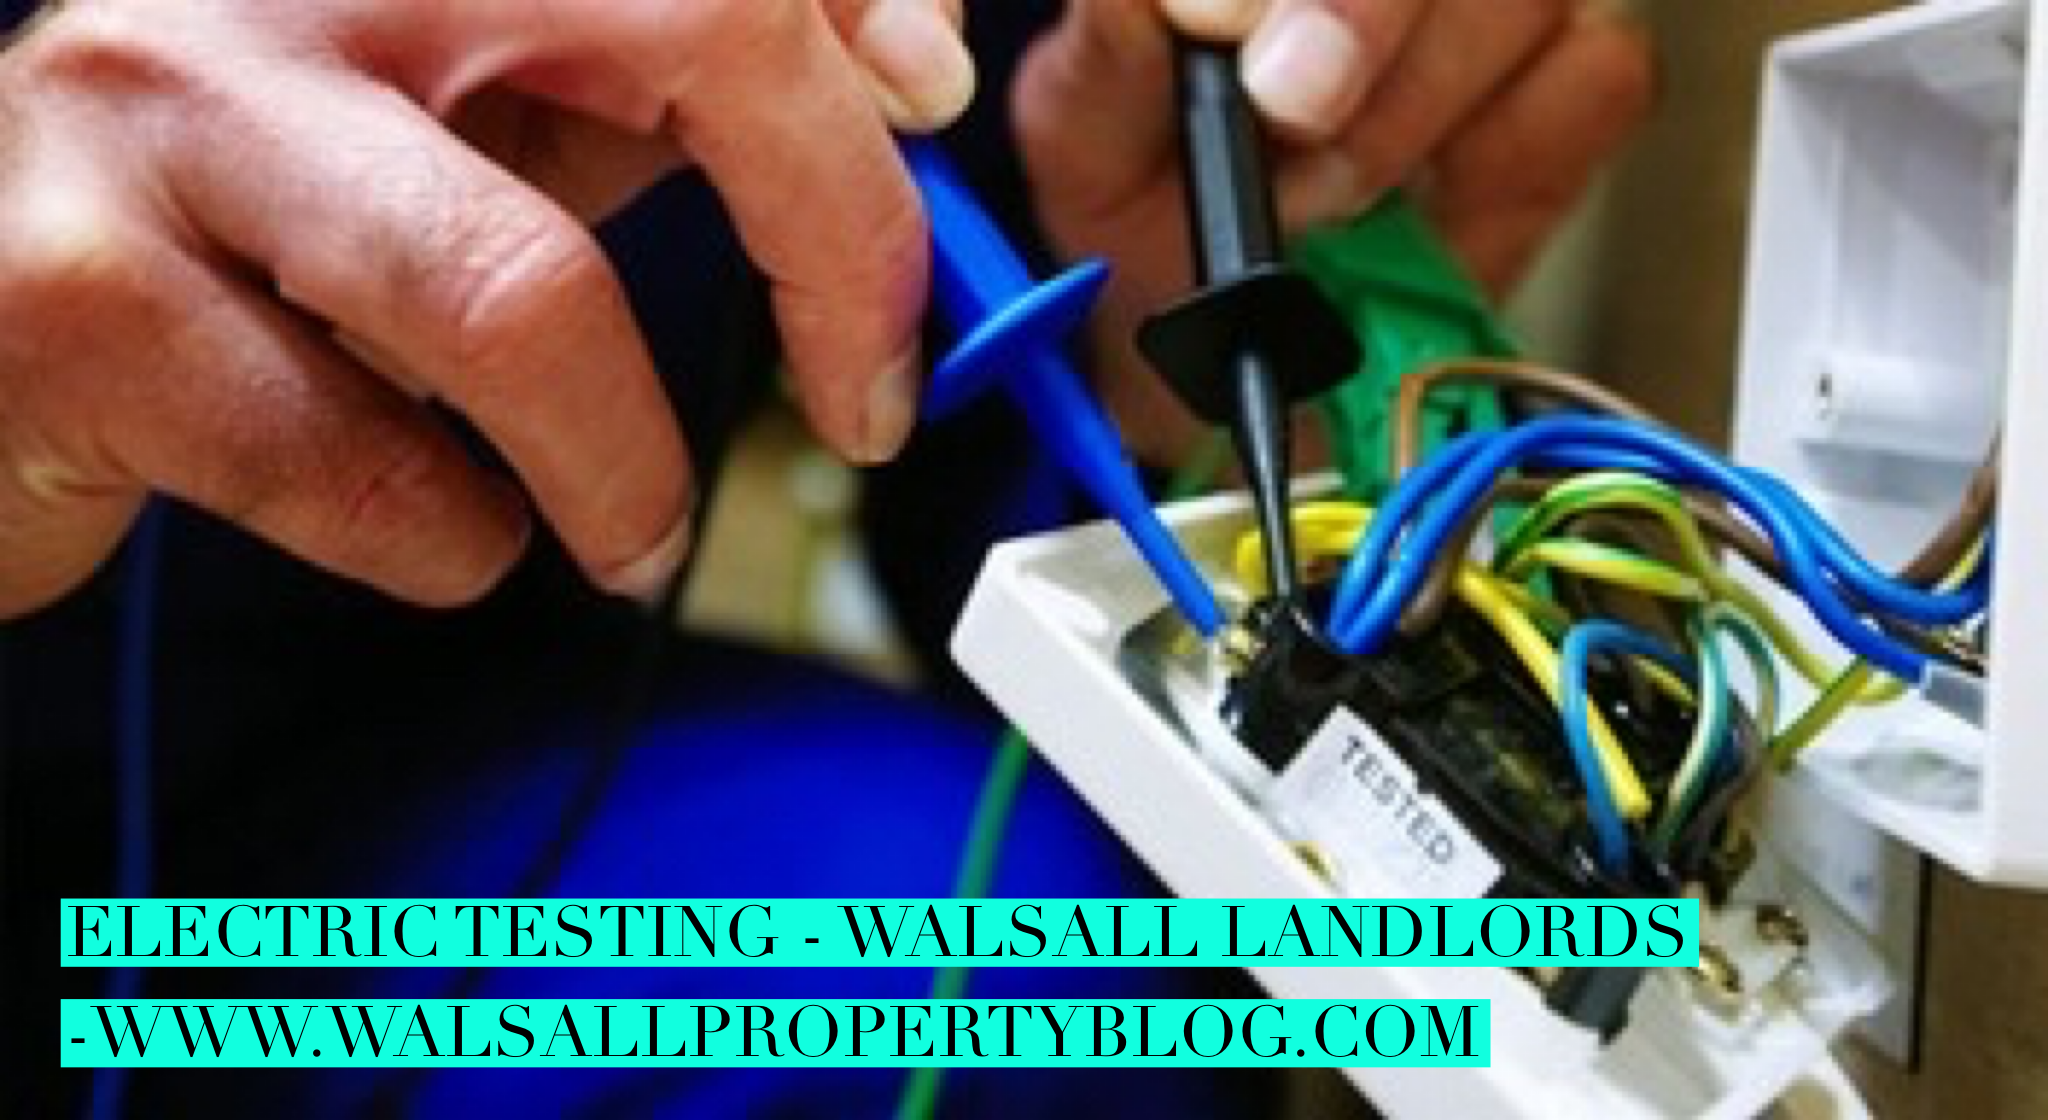 Electrical testing law change for Walsall Landlords